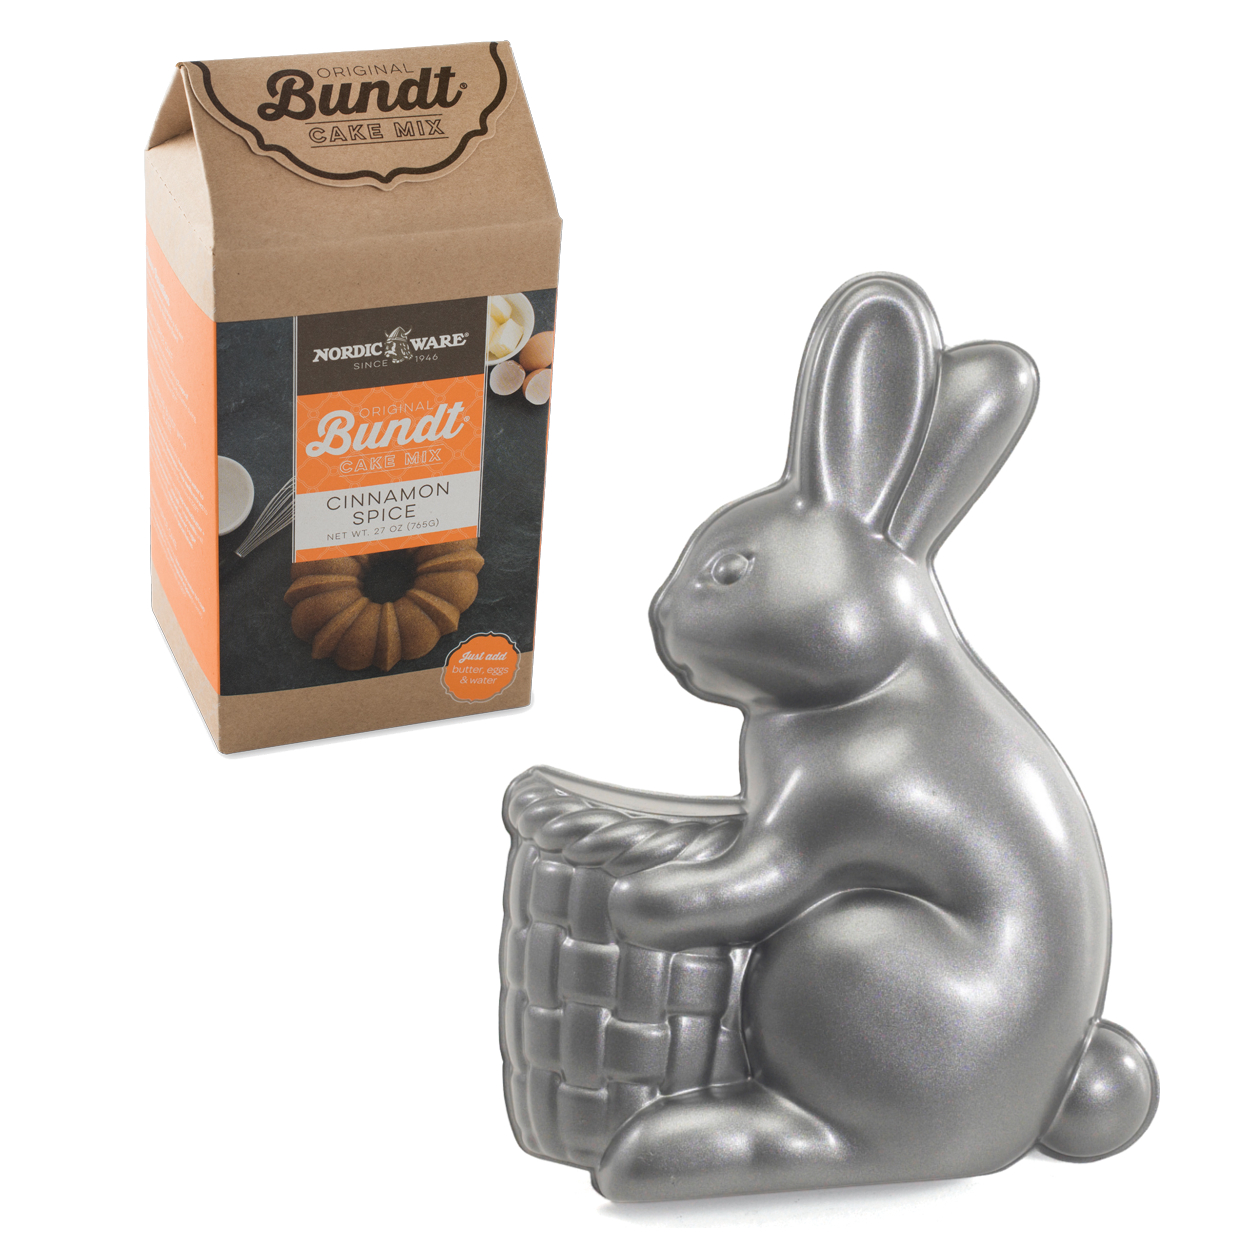 Nordic Ware Easter Bunny Cast Aluminum Pan with Cinnamon Spice Cake Mix